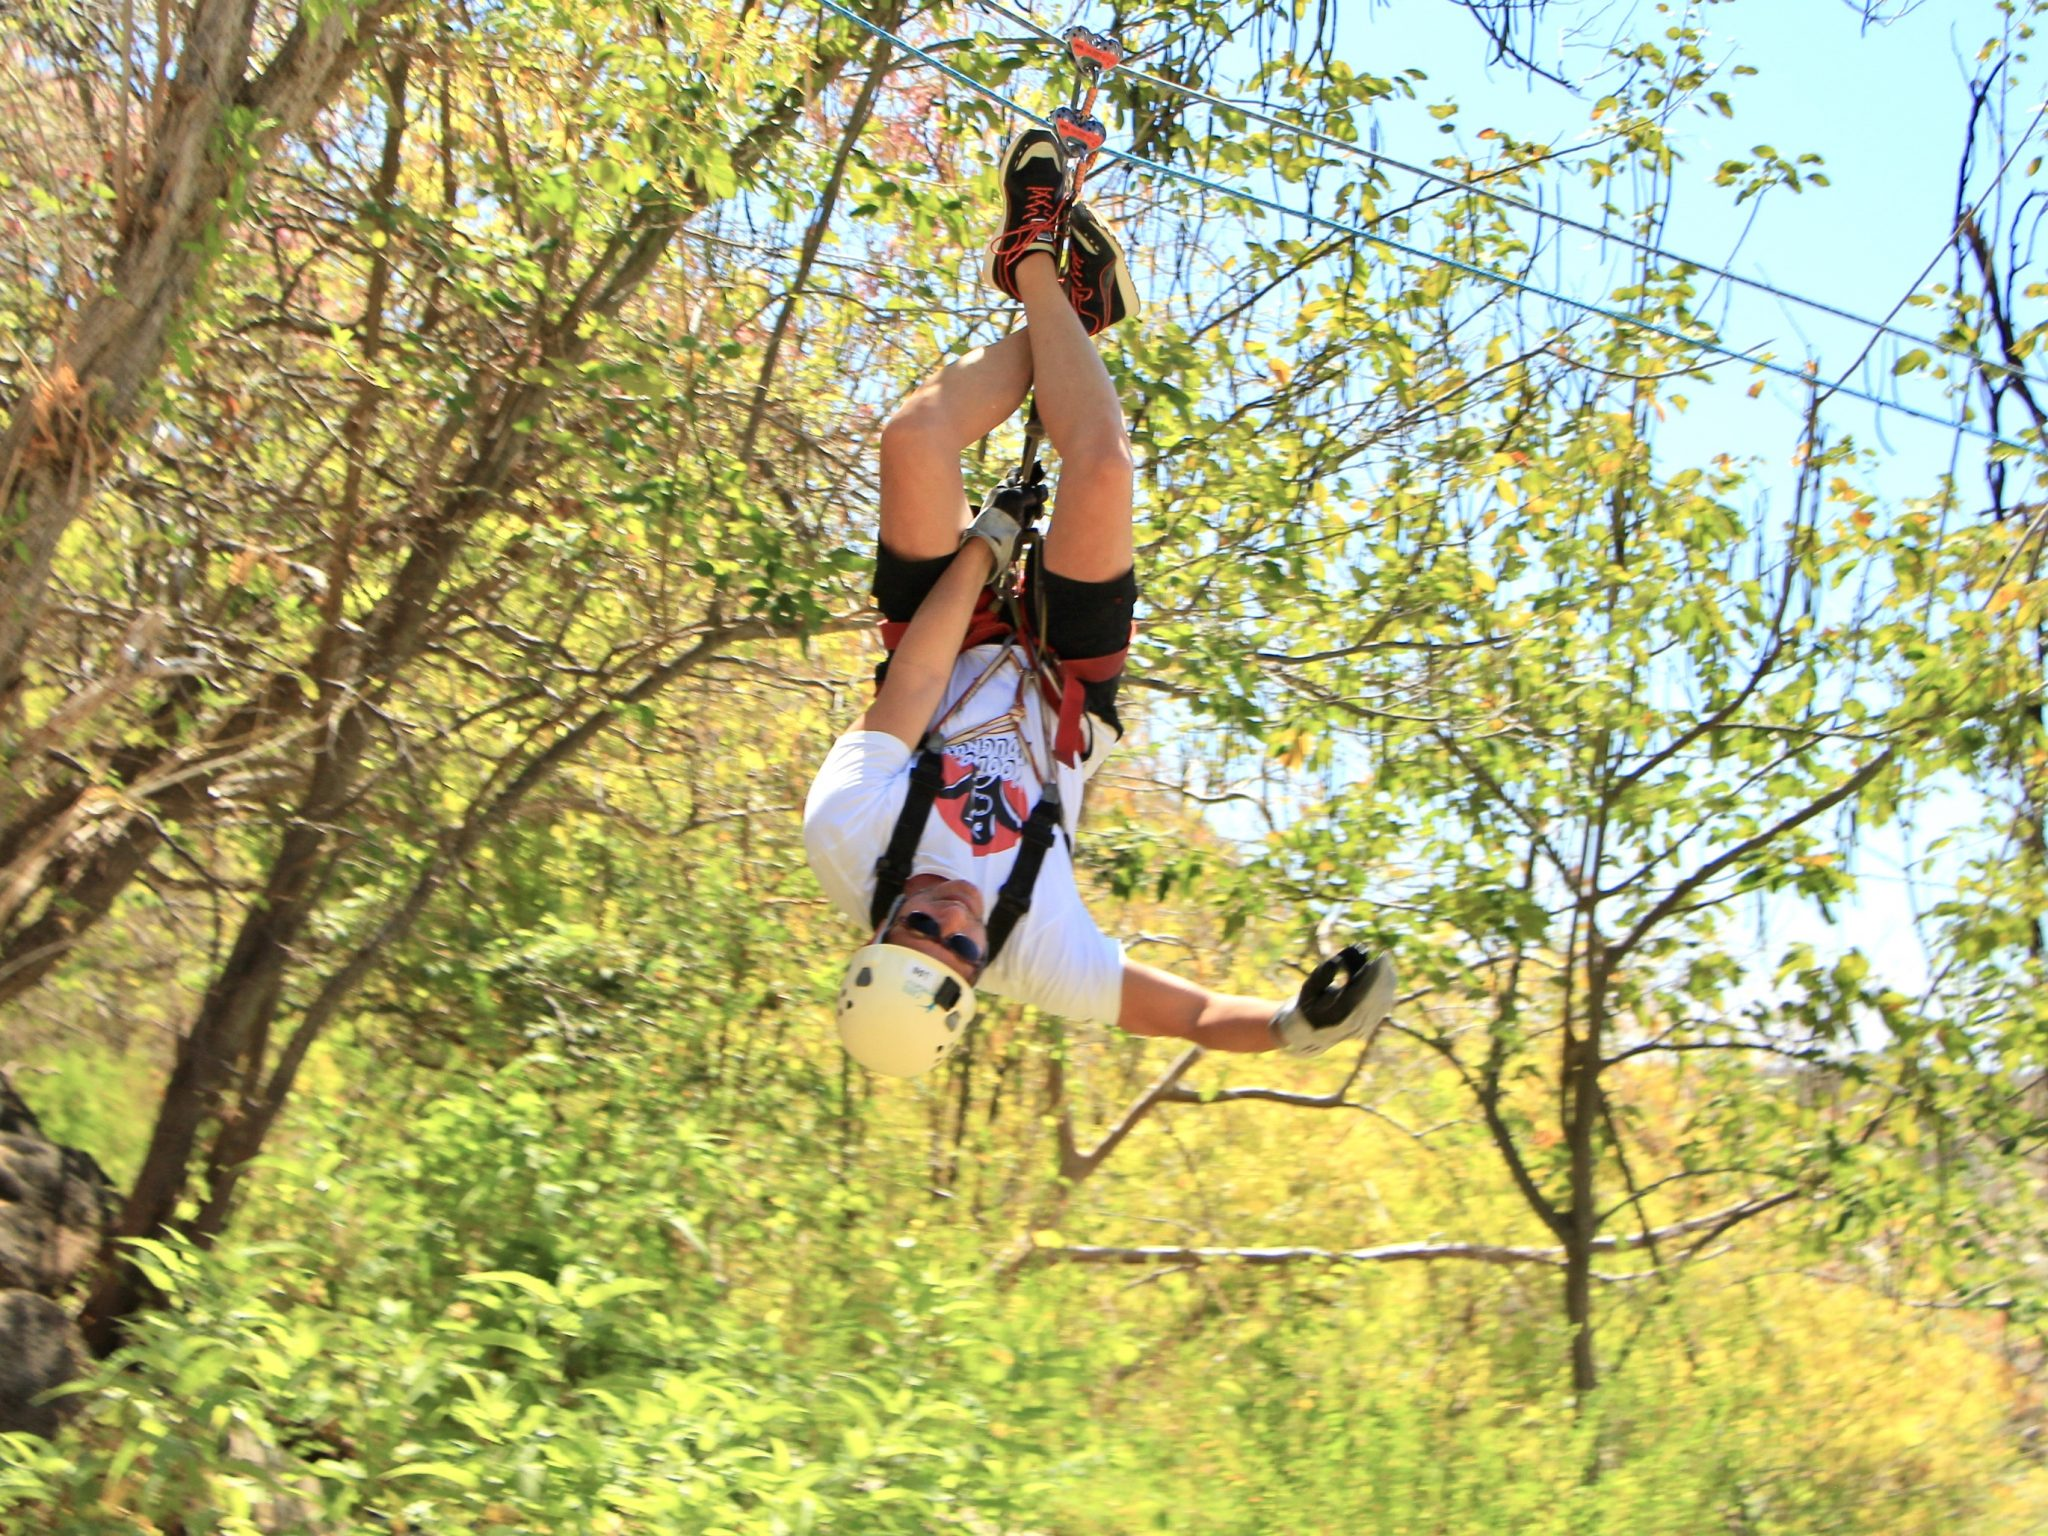 Man hangs upside down in perilous and fun zipline experience with Cabo Adventures in Los Cabos, Mexico